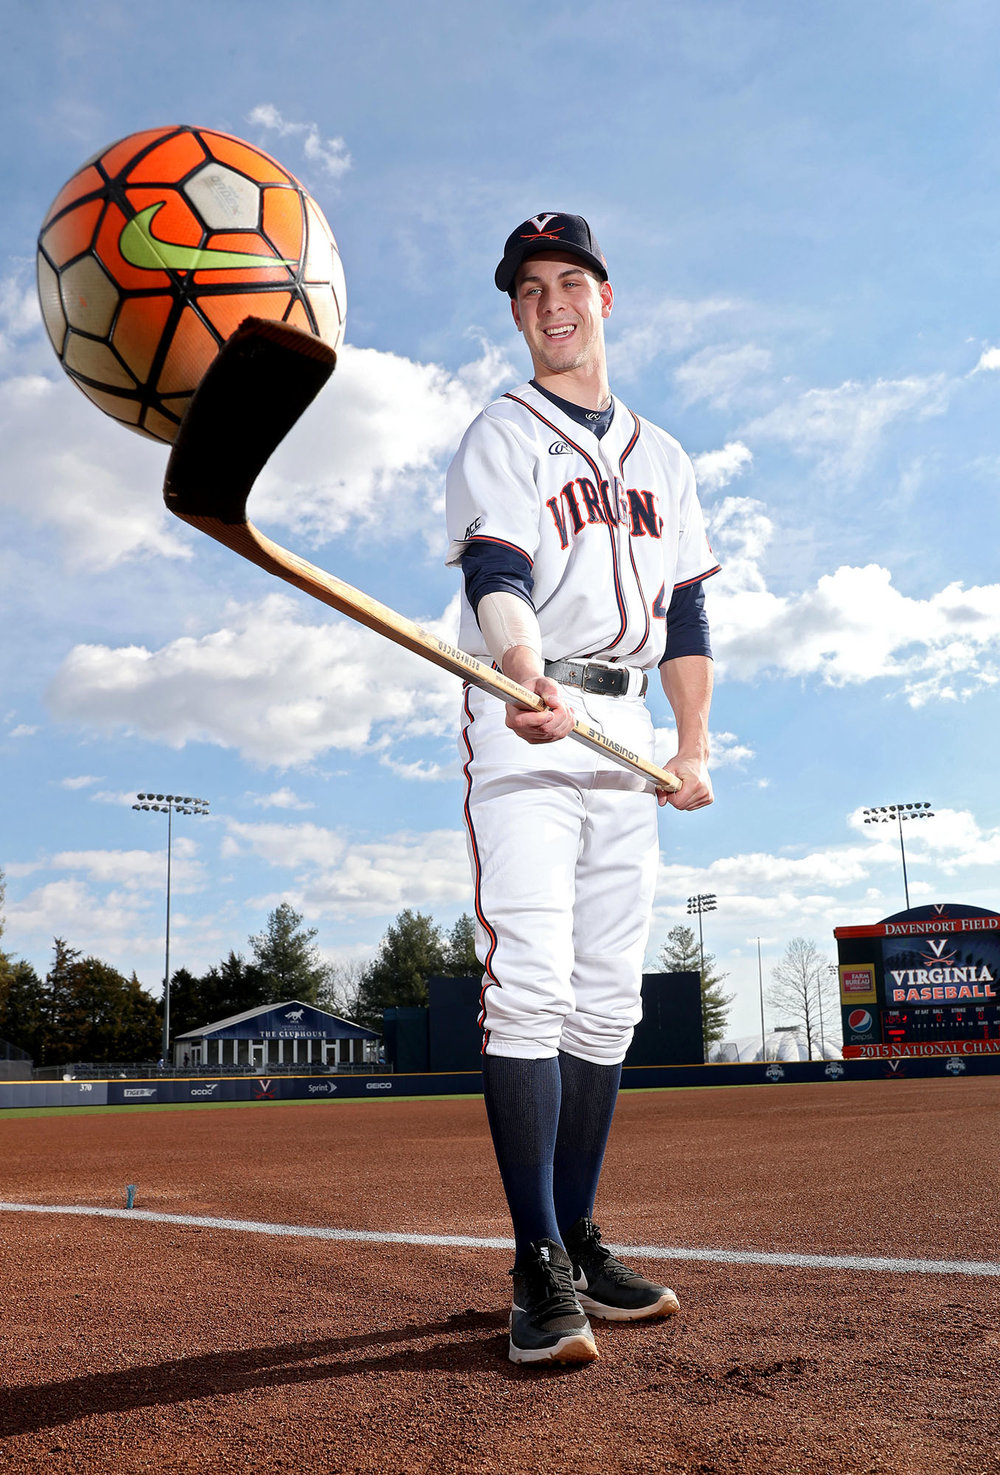 Virginia second baseman Ernie Clement was recruited for baseball after also playing soccer and hockey in high school.